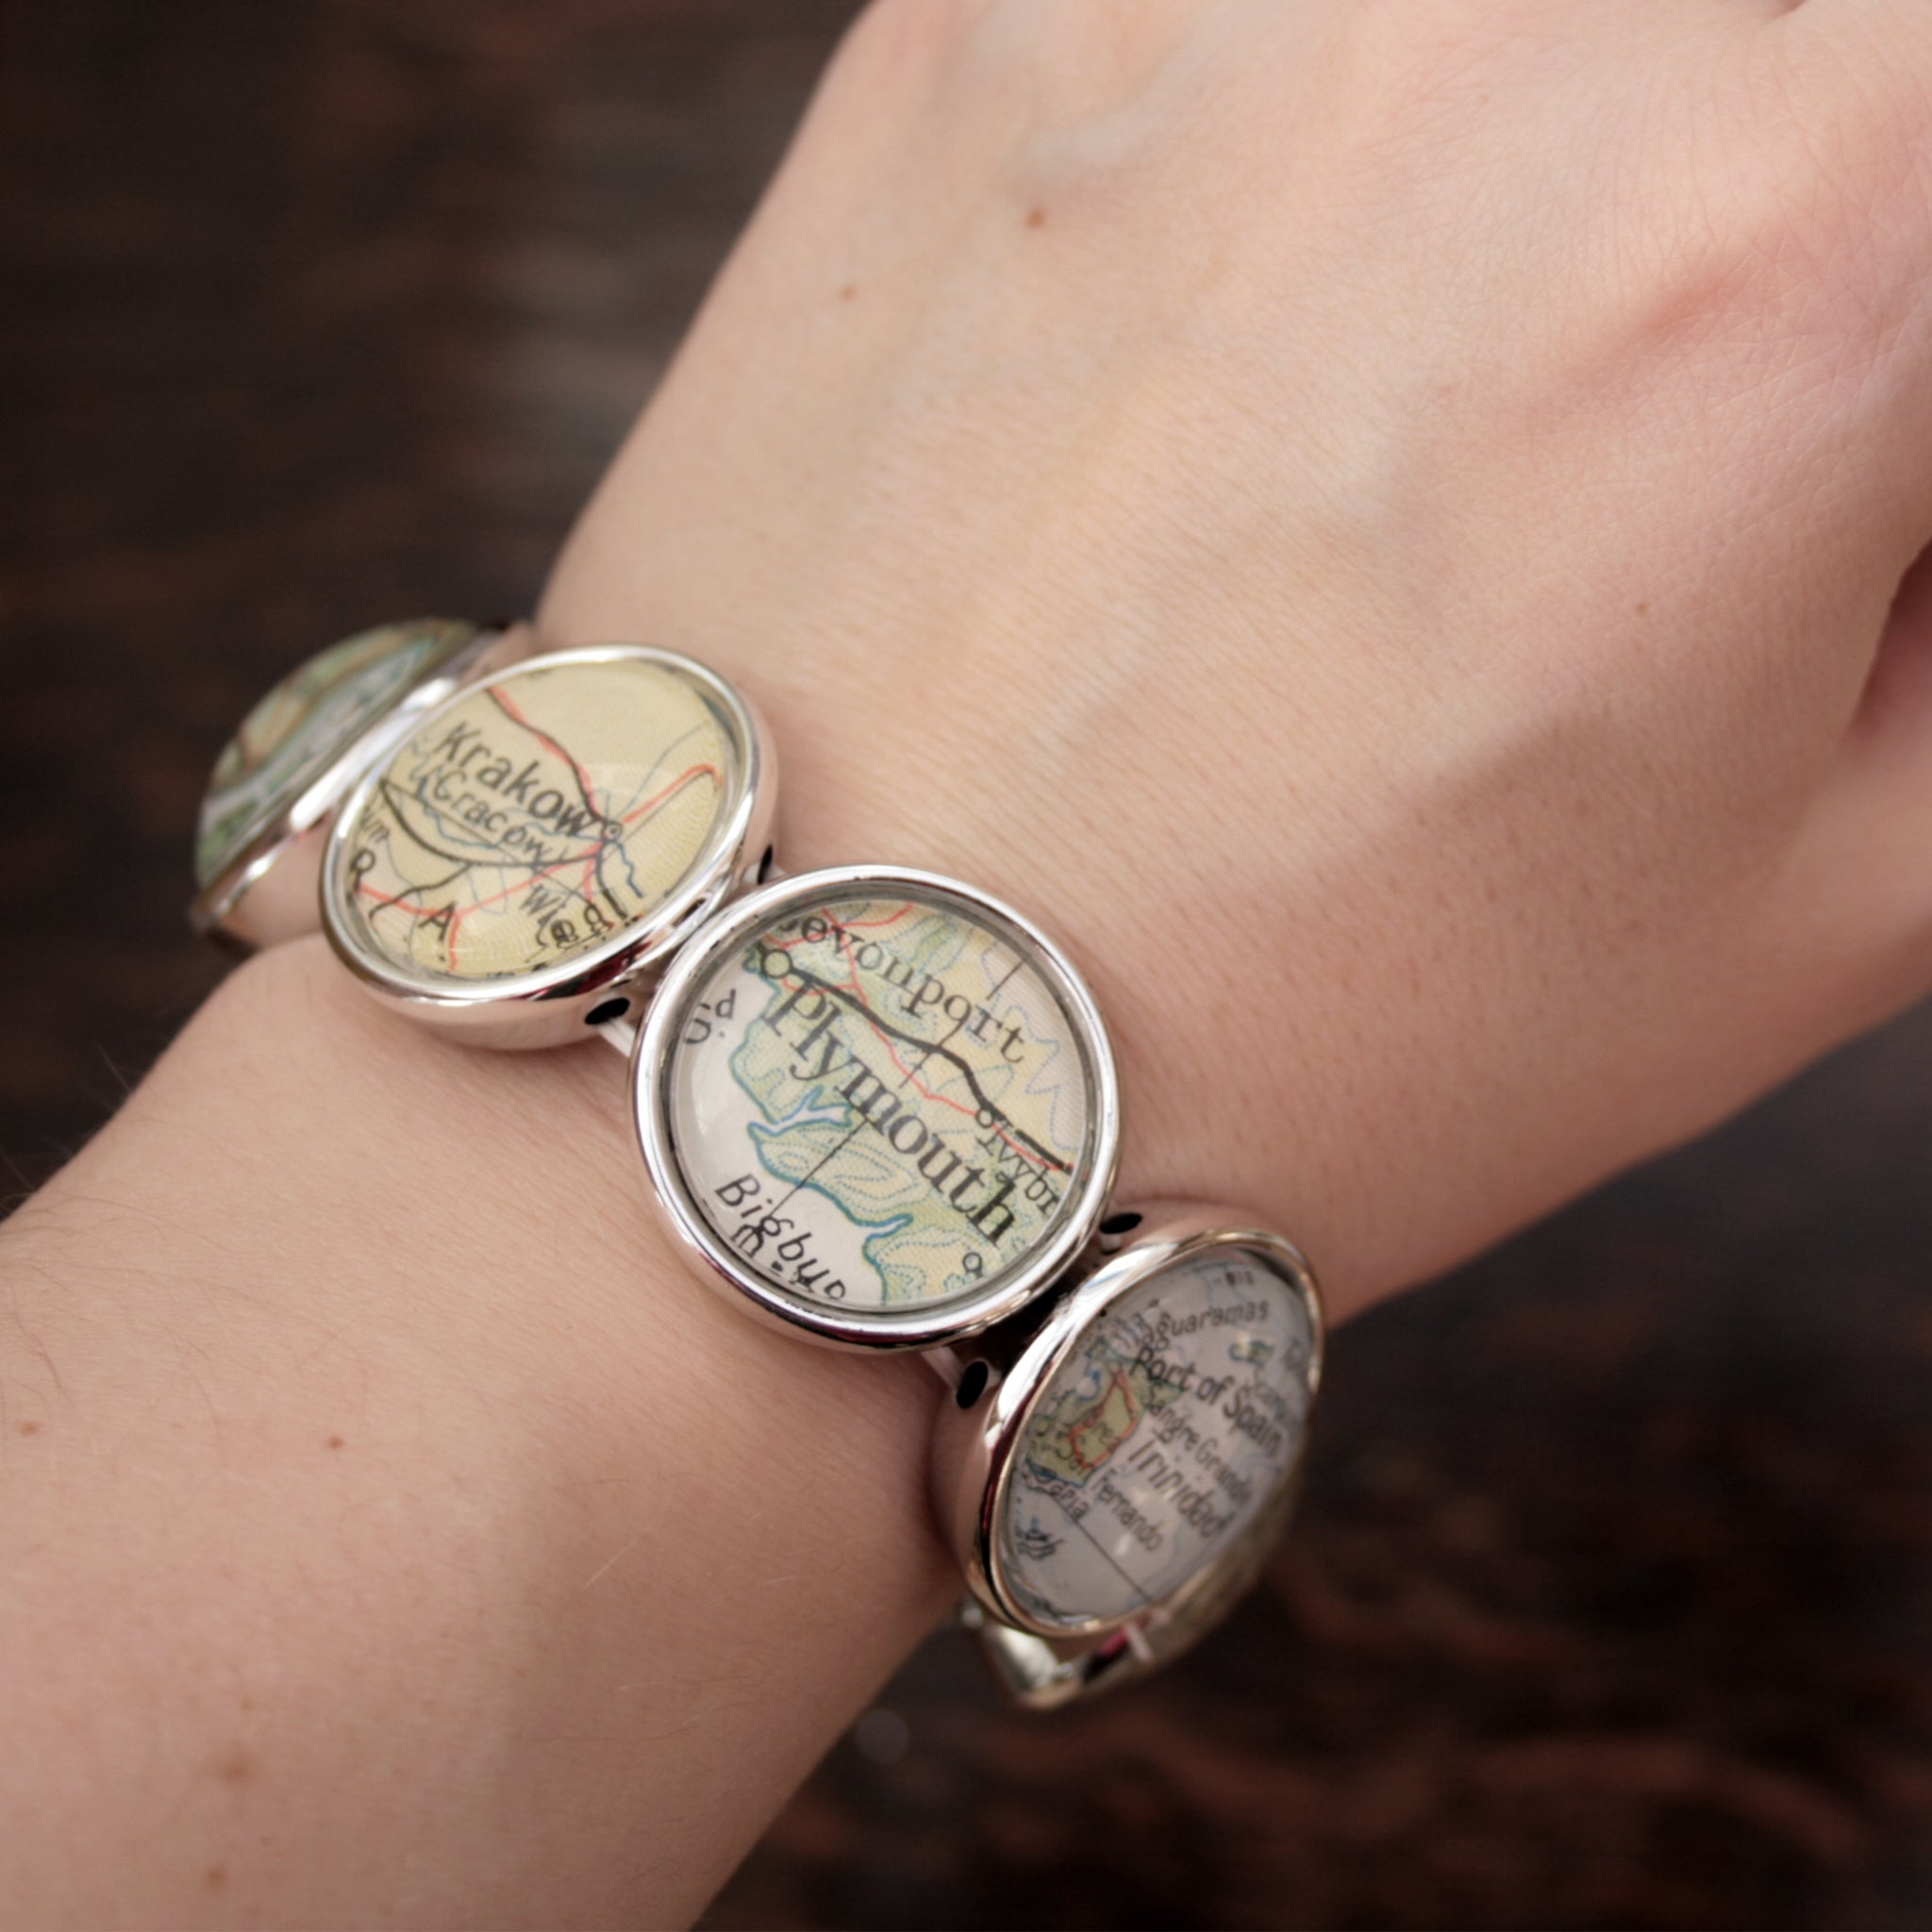 Worn on hand Stretchy bracelet in silver tone featuring custom map locations